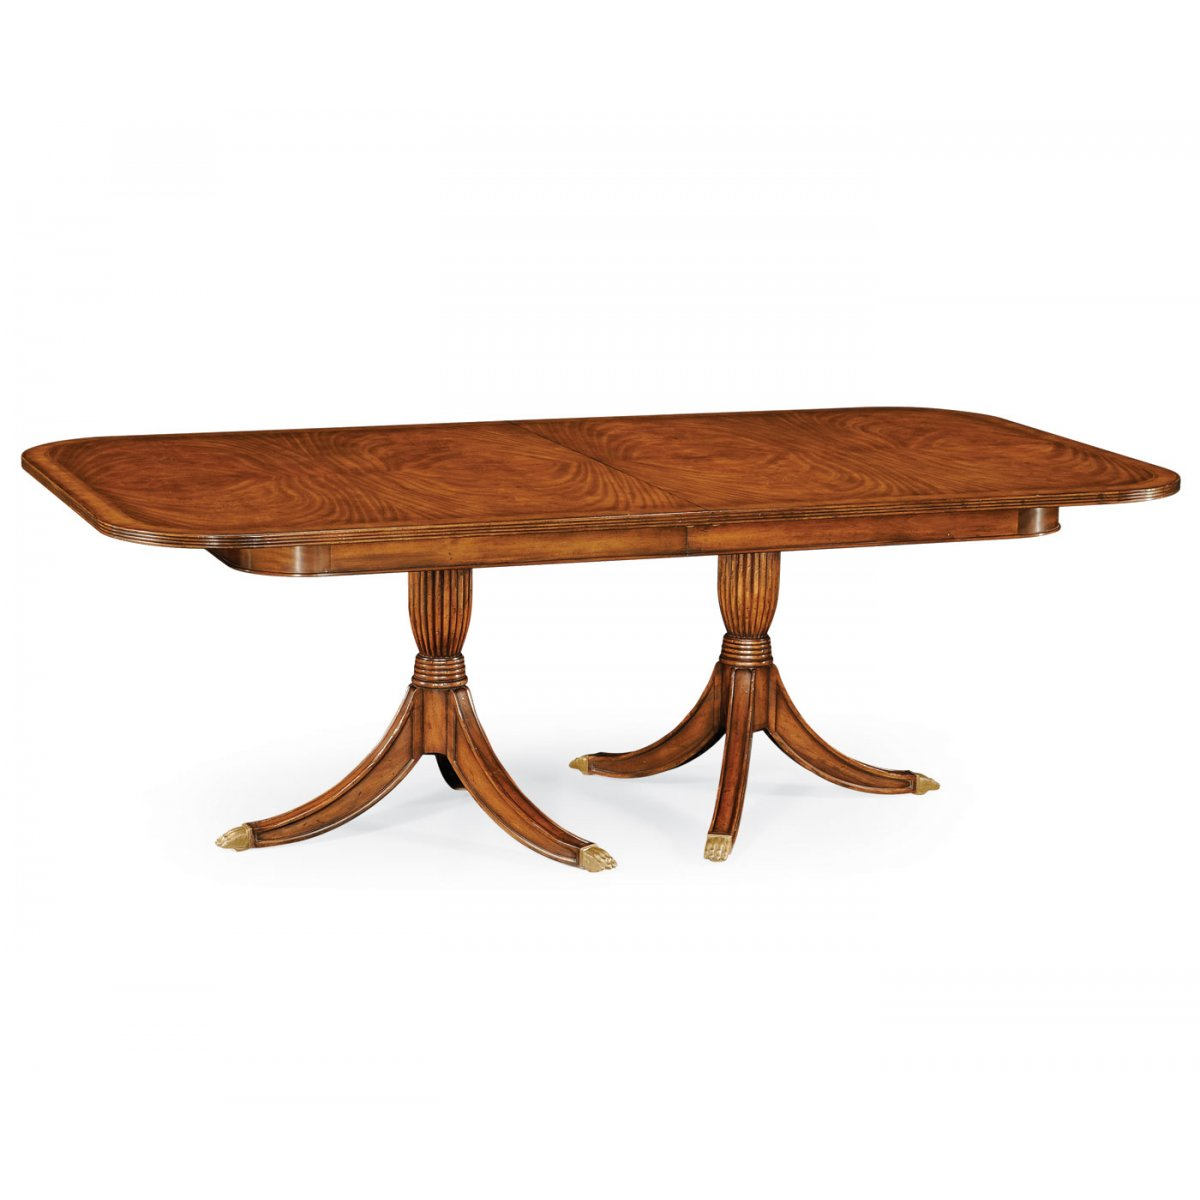 8 12 seater walnut extending dining table swanky interiors